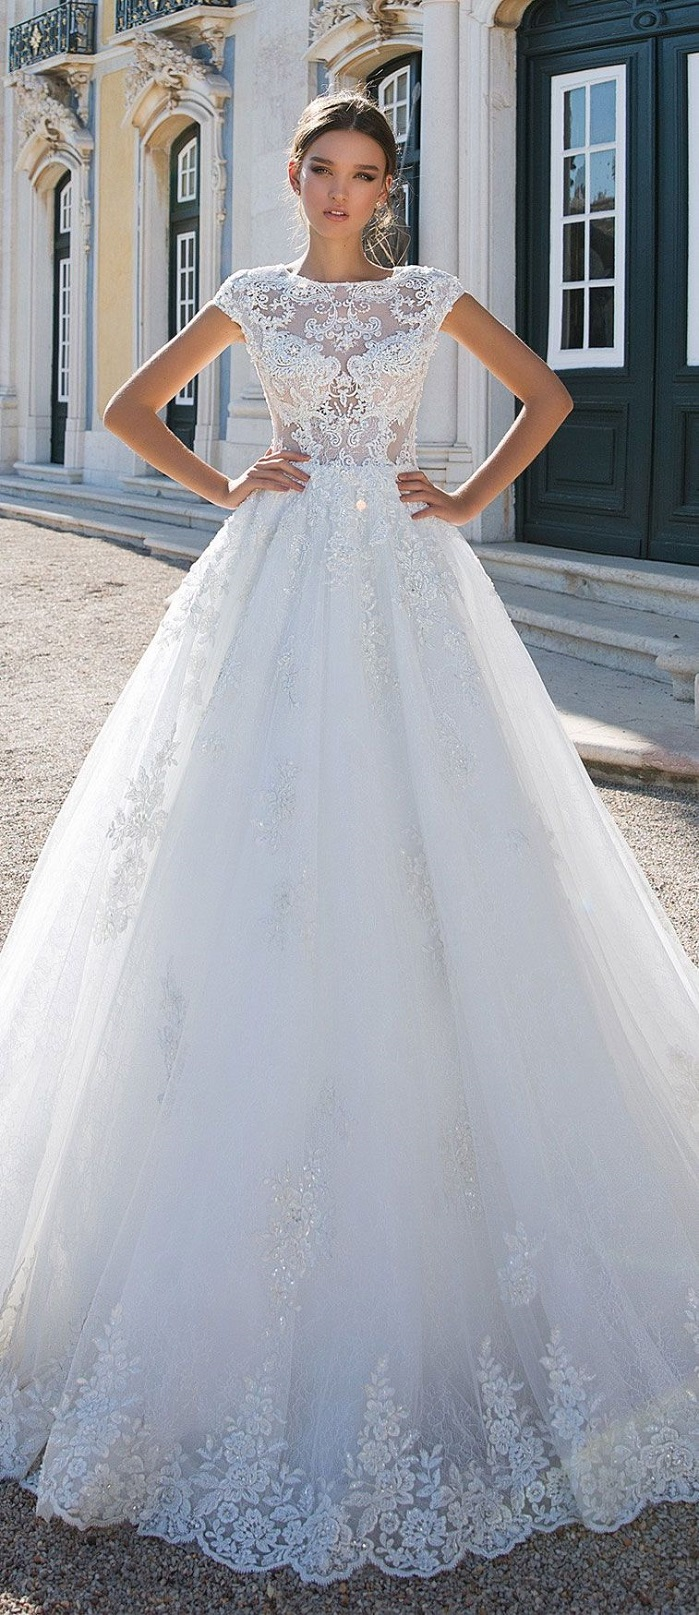 Short sleeves round neck heavy embellishment ball gown wedding dress : Milla Nova wedding dress #weddingdress #weddinggown #wedding #bridedress